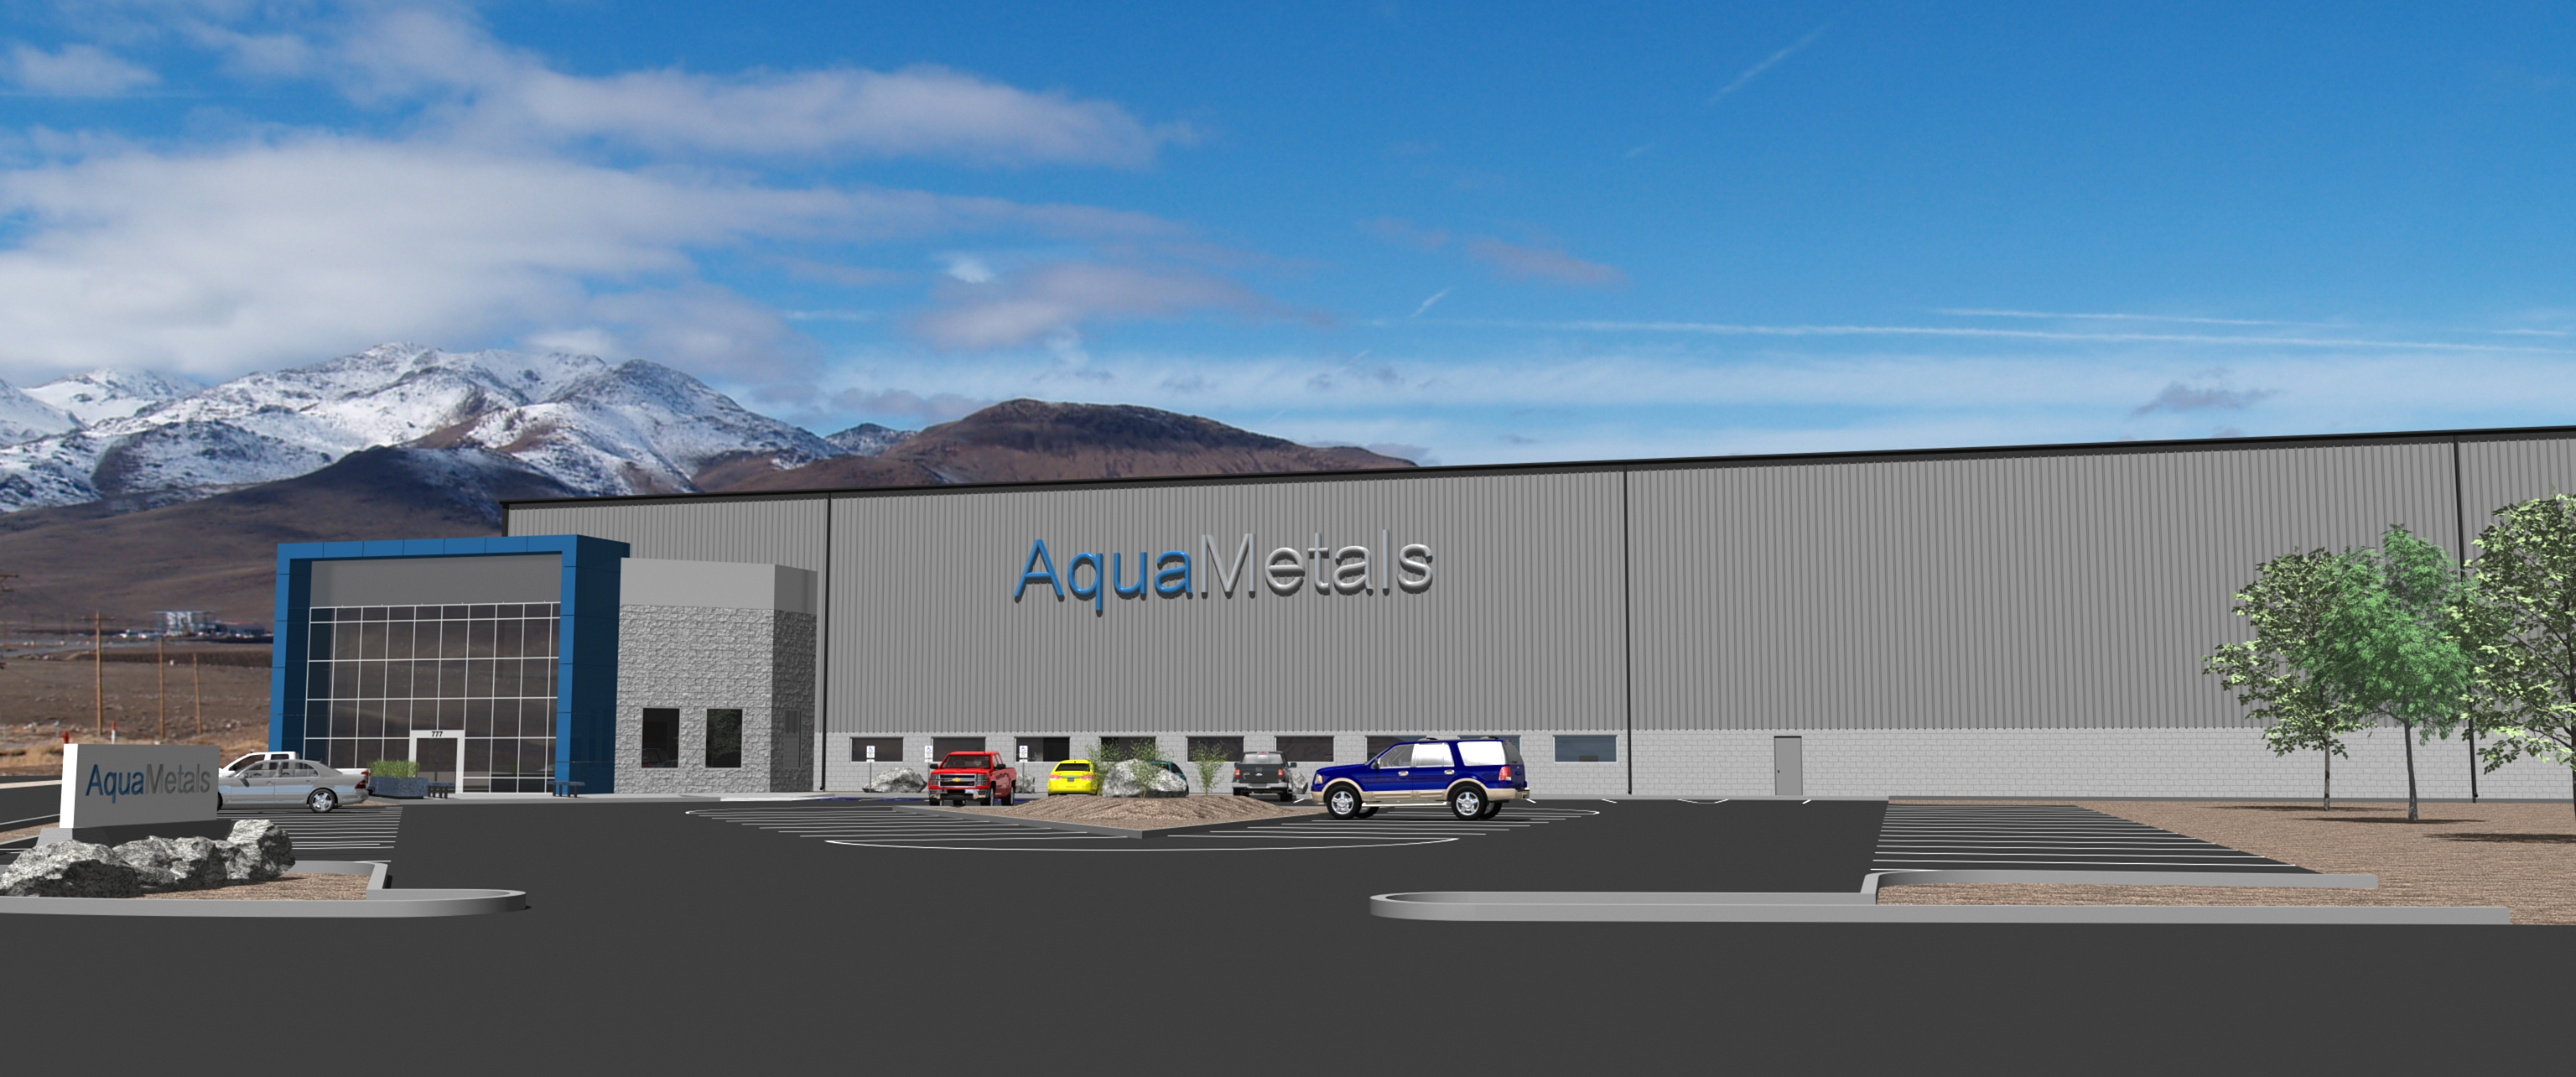 A mockup image of Aqua Metal's lead acid battery recycling facility in Nevada.